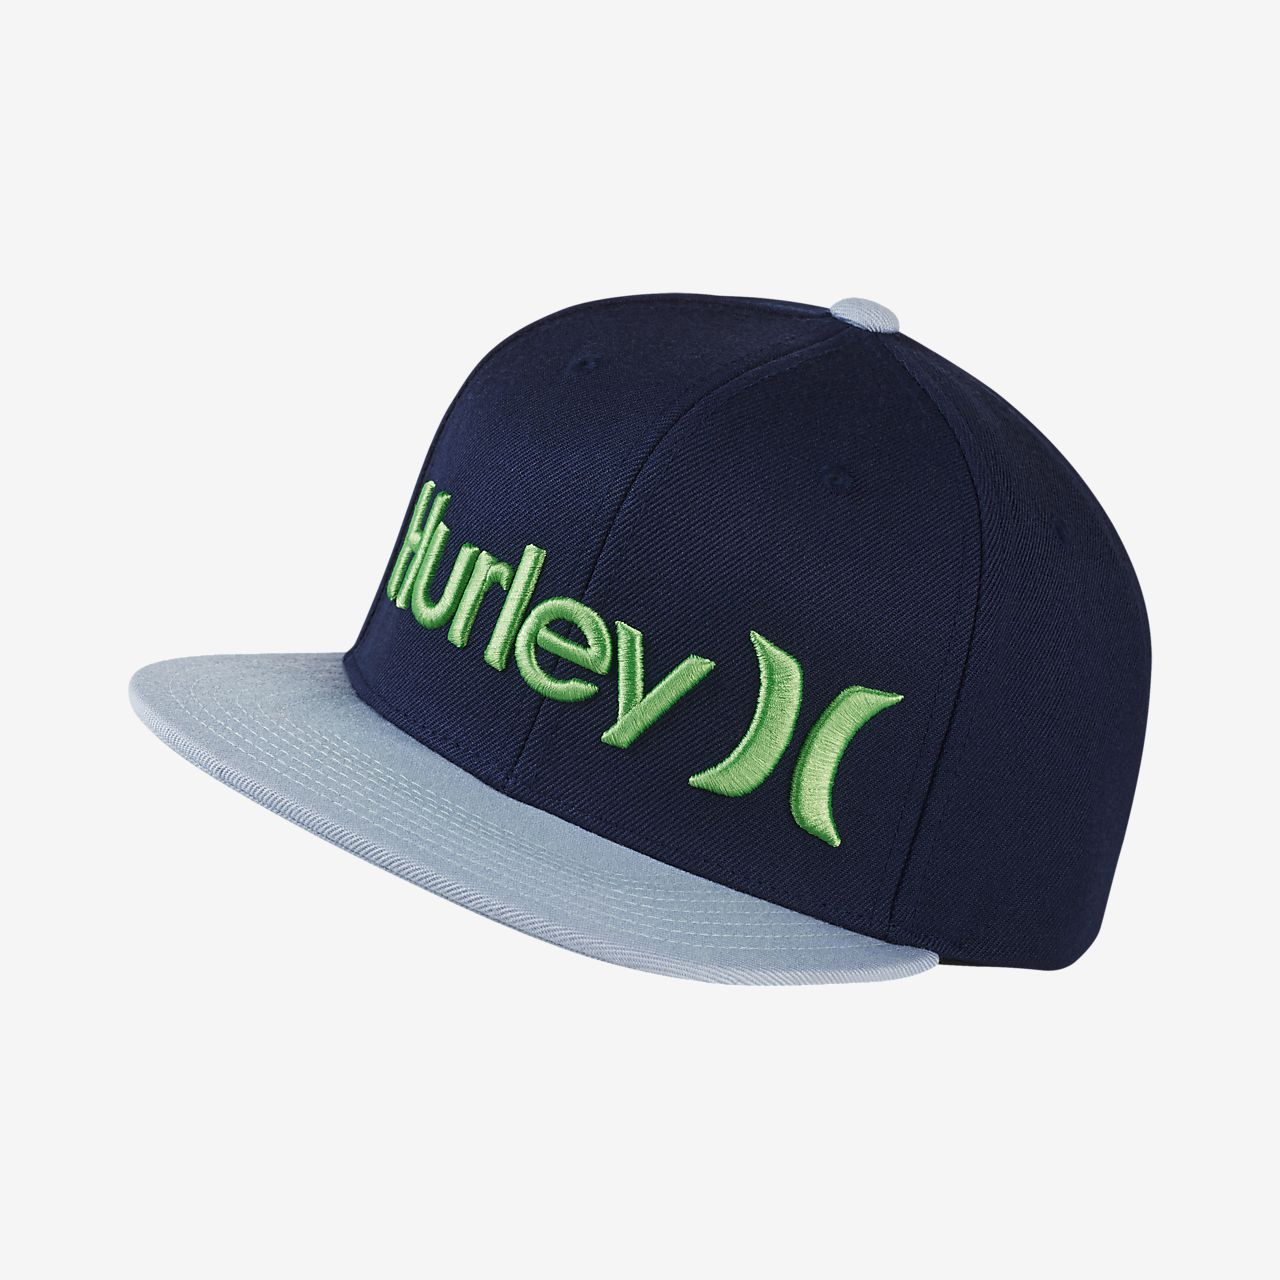 Hurley Casquette Only One HommeCa And Pour Réglable wOmNn0v8